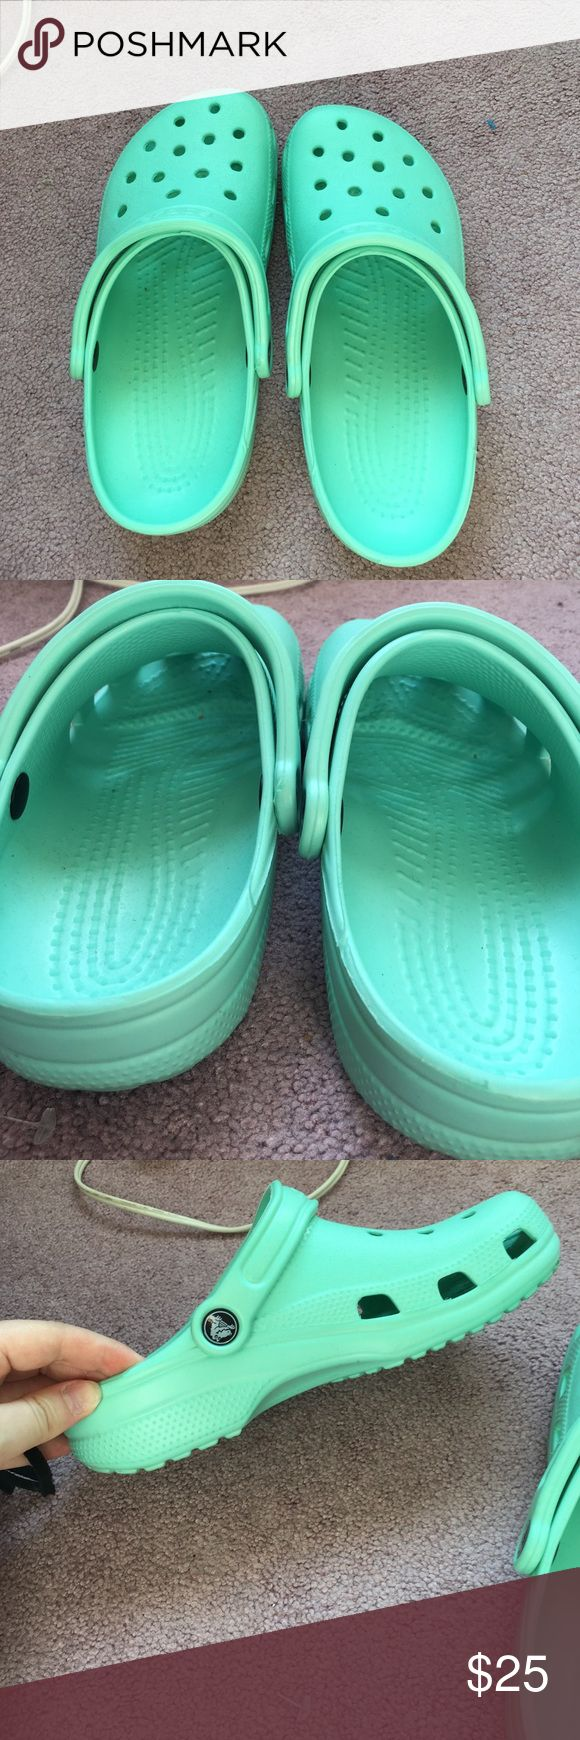 Mint Crocs Womens 8 Worn once! Great condition CROCS Shoes Mules & Clogs